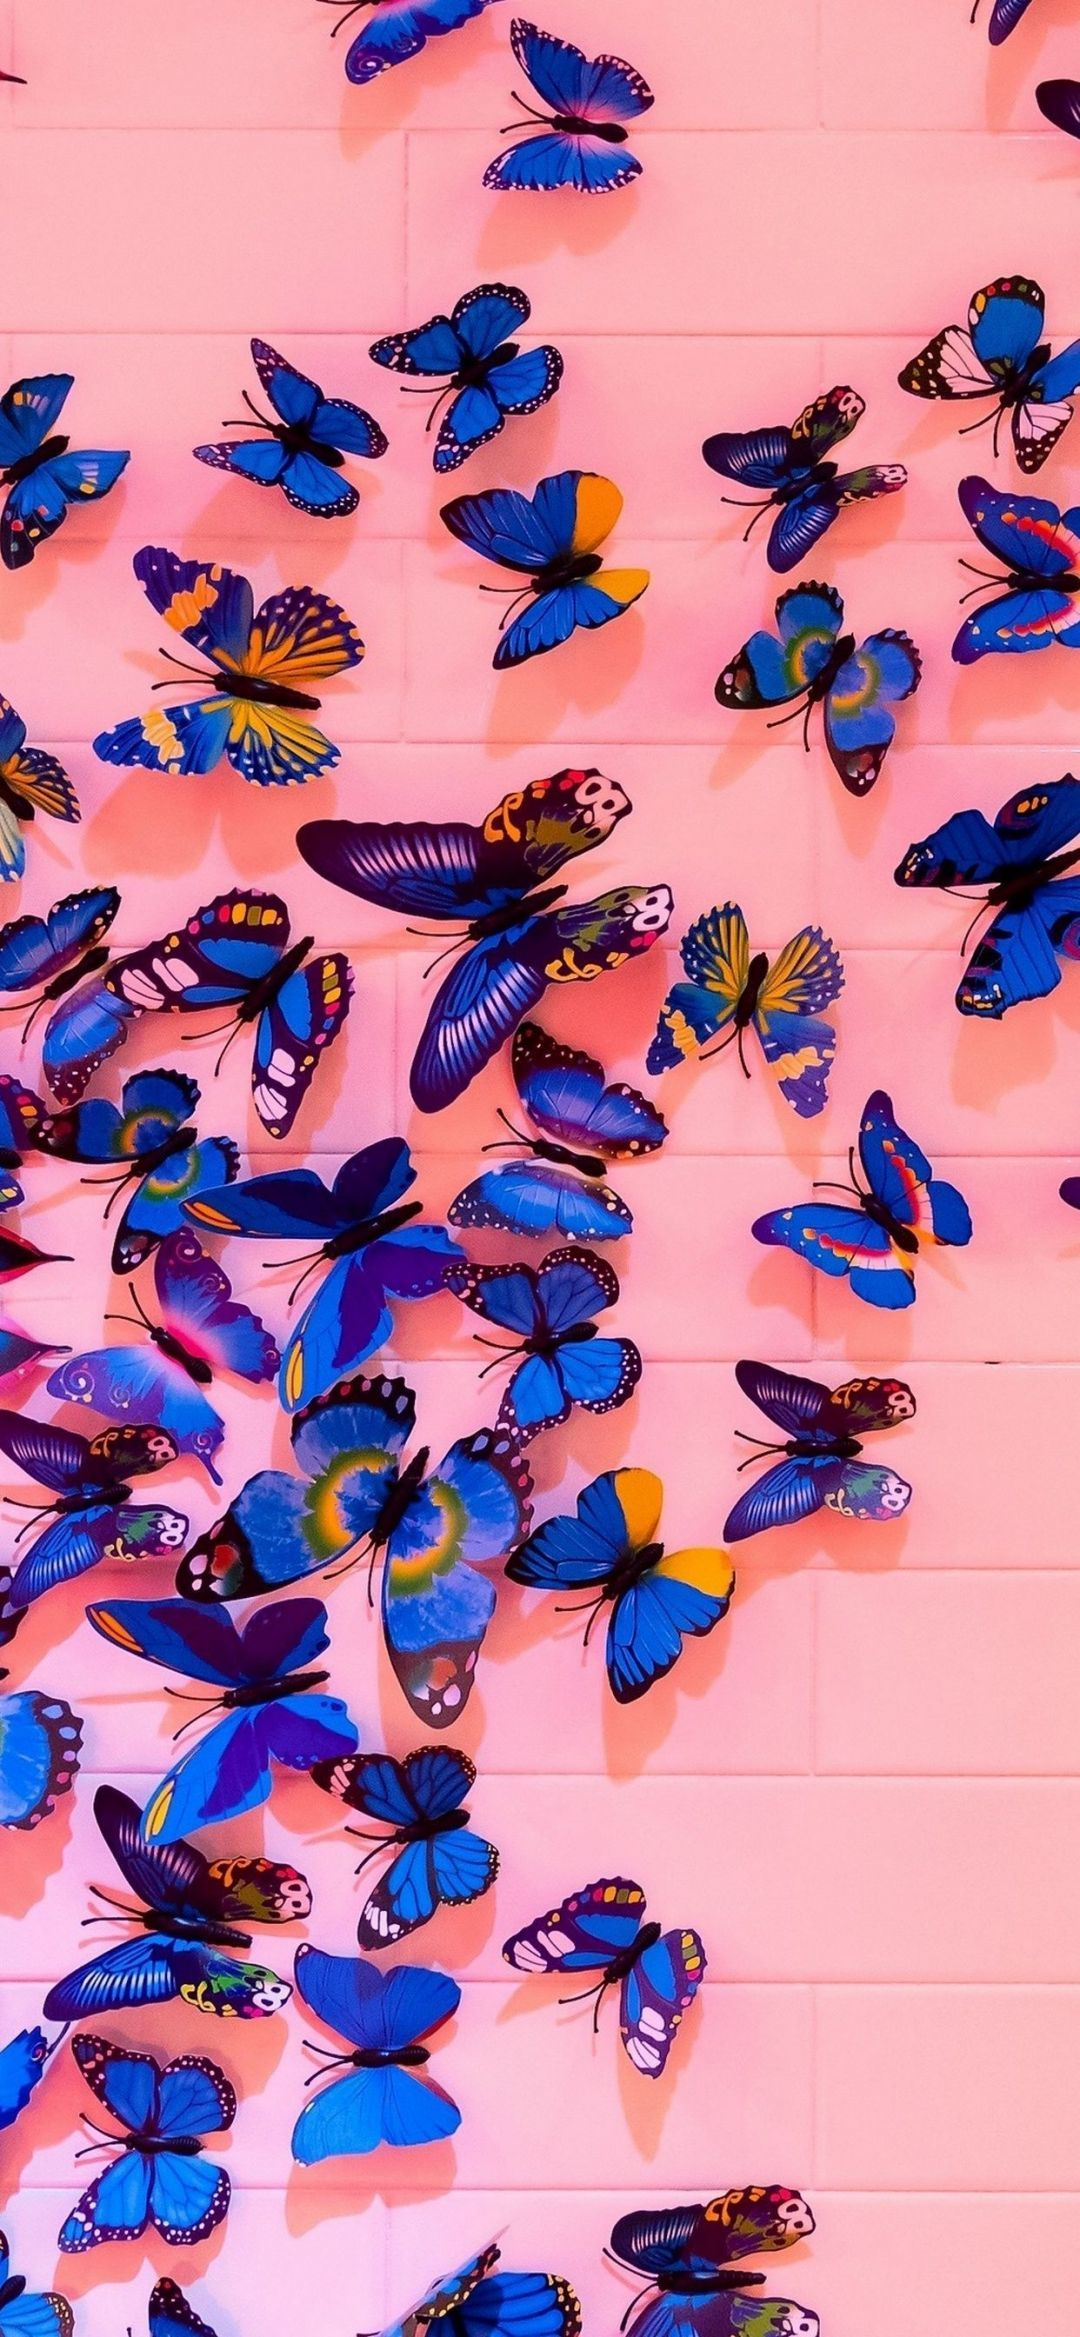 Aesthetic Butterfly Wallpapers Wallpaper Cave